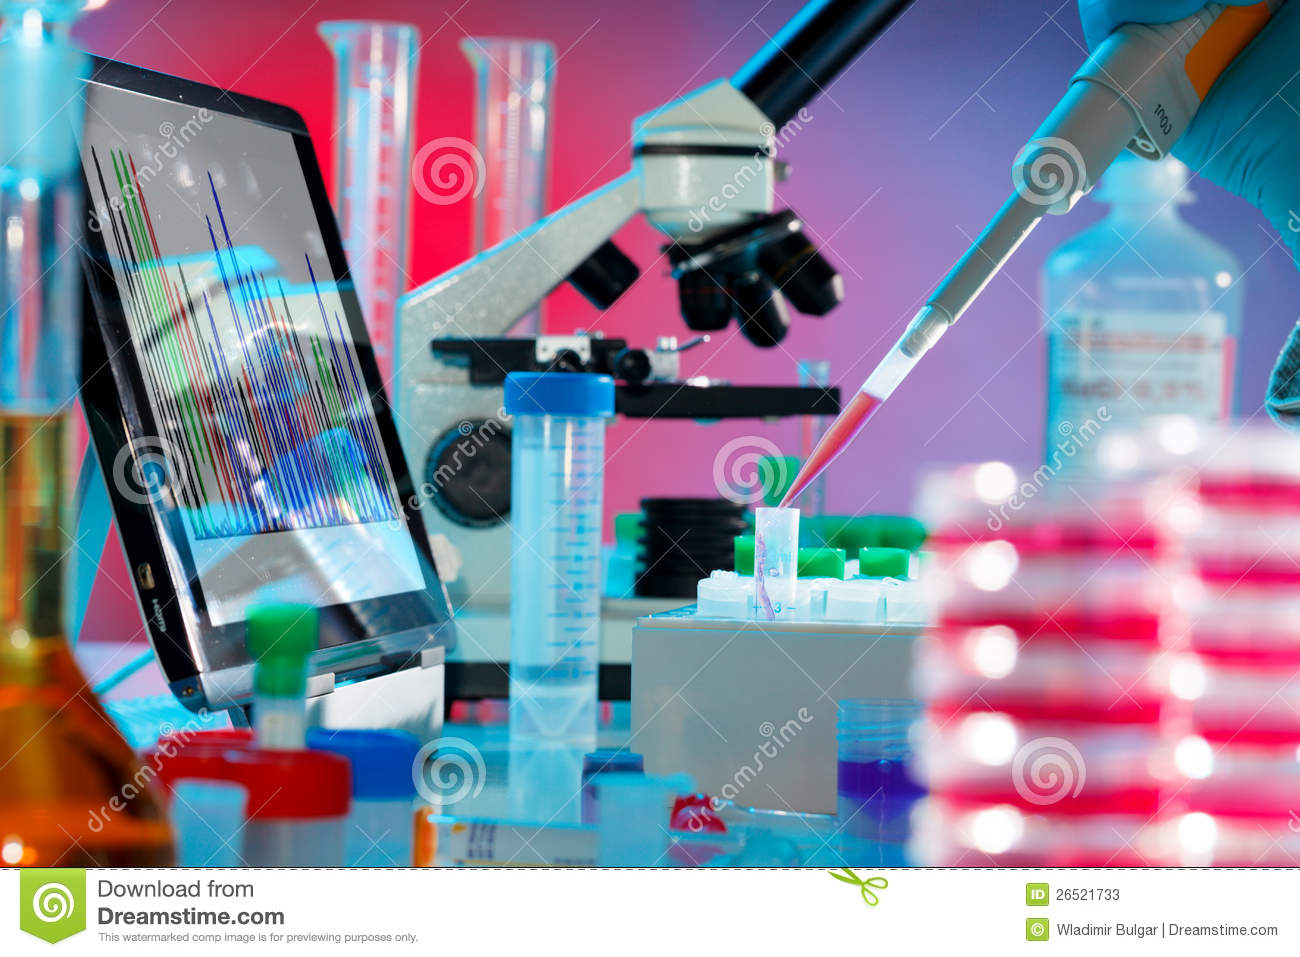 ... plan for first-in-nation DNA testing lab - Business - The Times